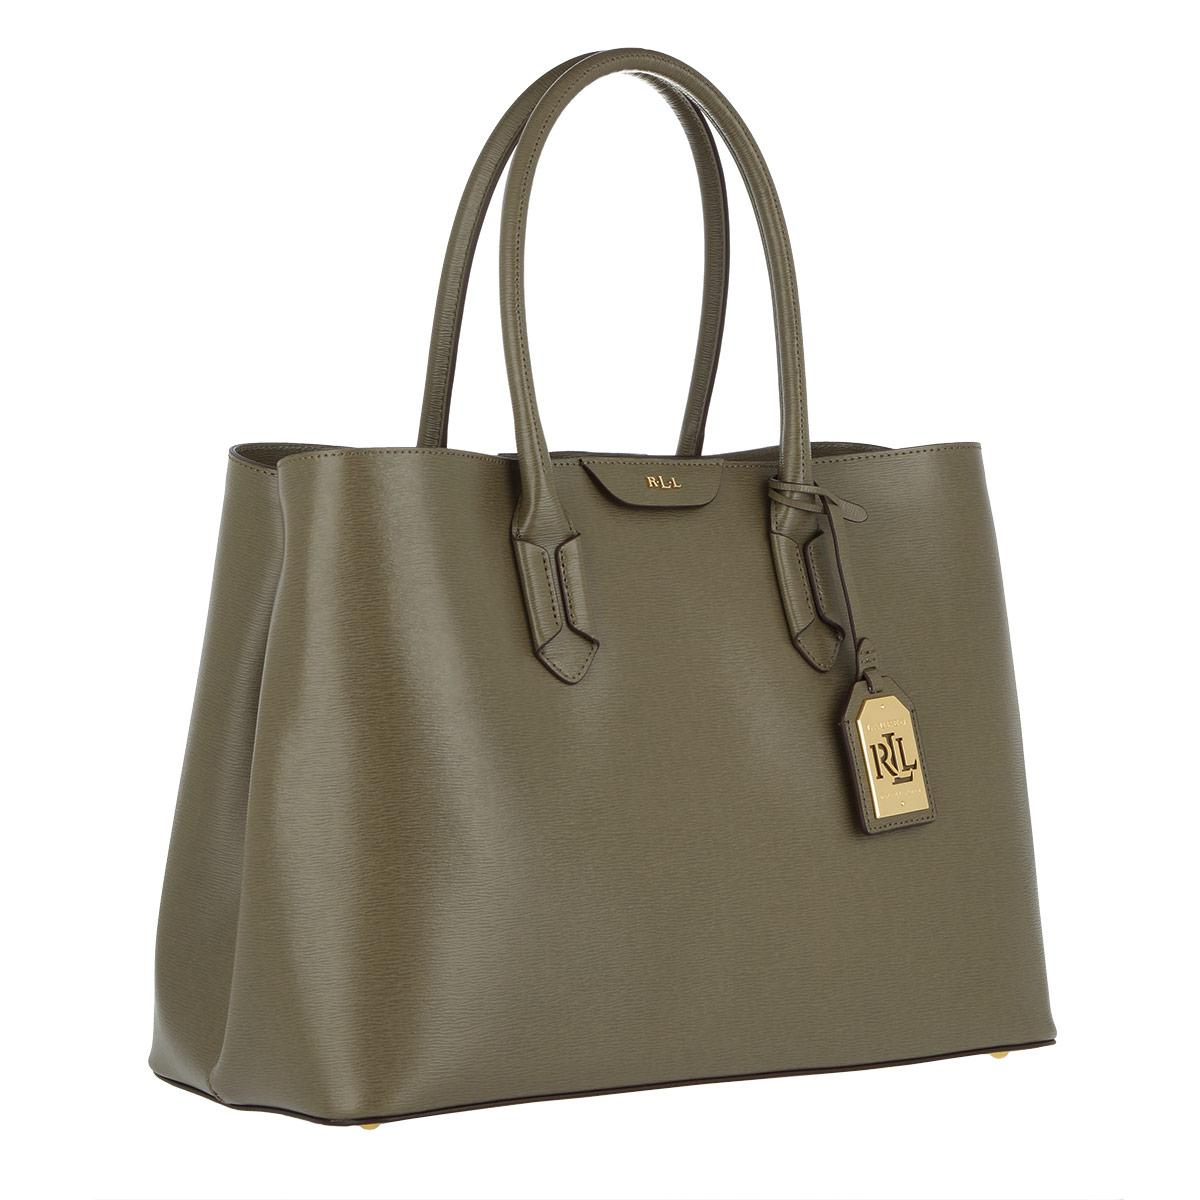 Lauren by Ralph Lauren Tate City Tote Sage in Green - Lyst 9579c1479a0f6